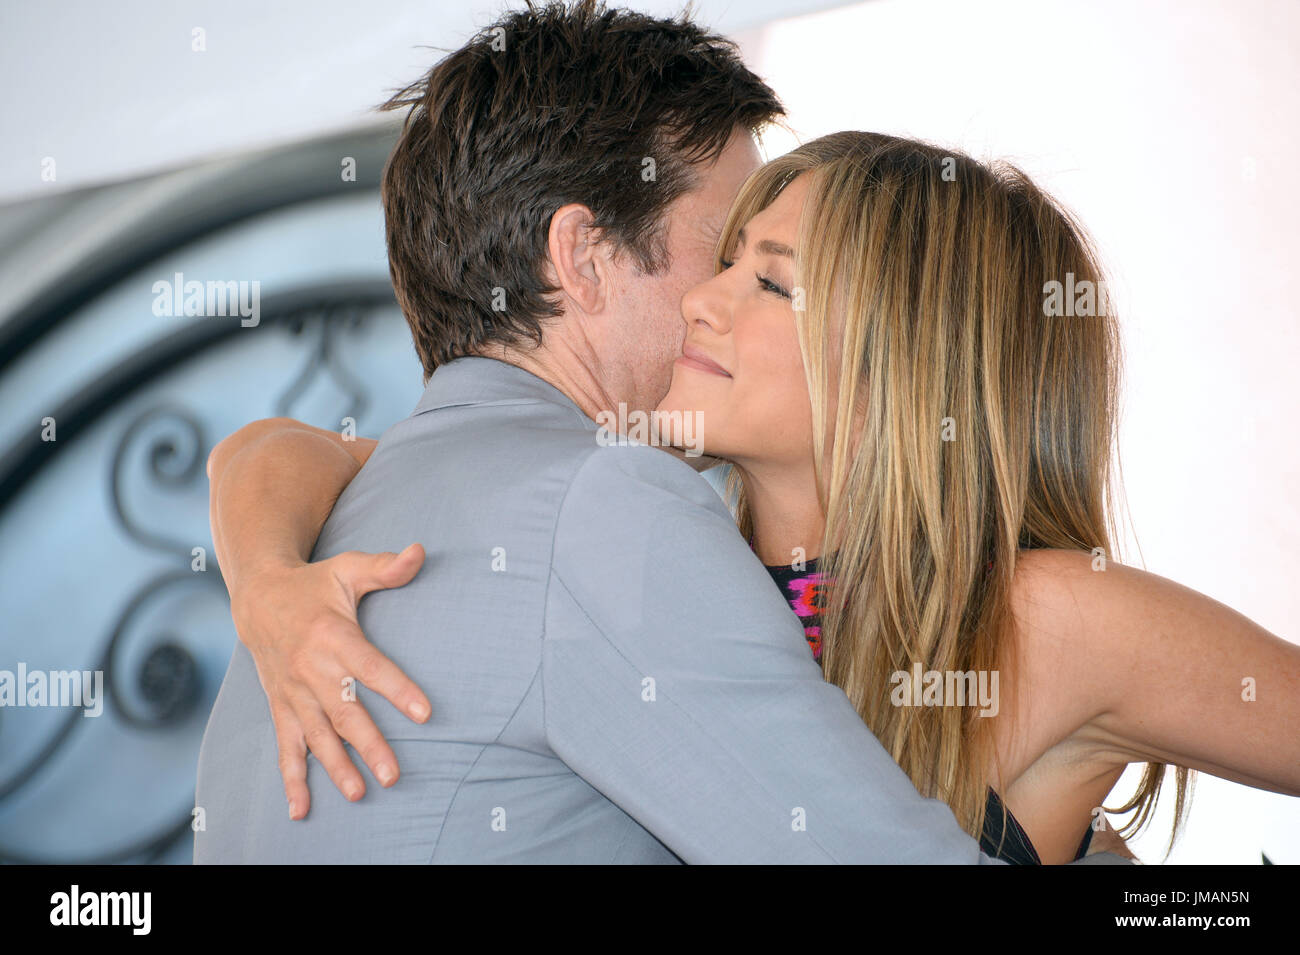 Los Angeles, USA. 26 juillet, 2017. LOS ANGELES, CA. 26 juillet 2017 : acteurs Jason Bateman et Jennifer Aniston au Hollywood Walk of Fame Star Cérémonie en l'honneur acteur Jason Bateman. Crédit photo : Sarah Stewart/Alamy Live News Photo Stock